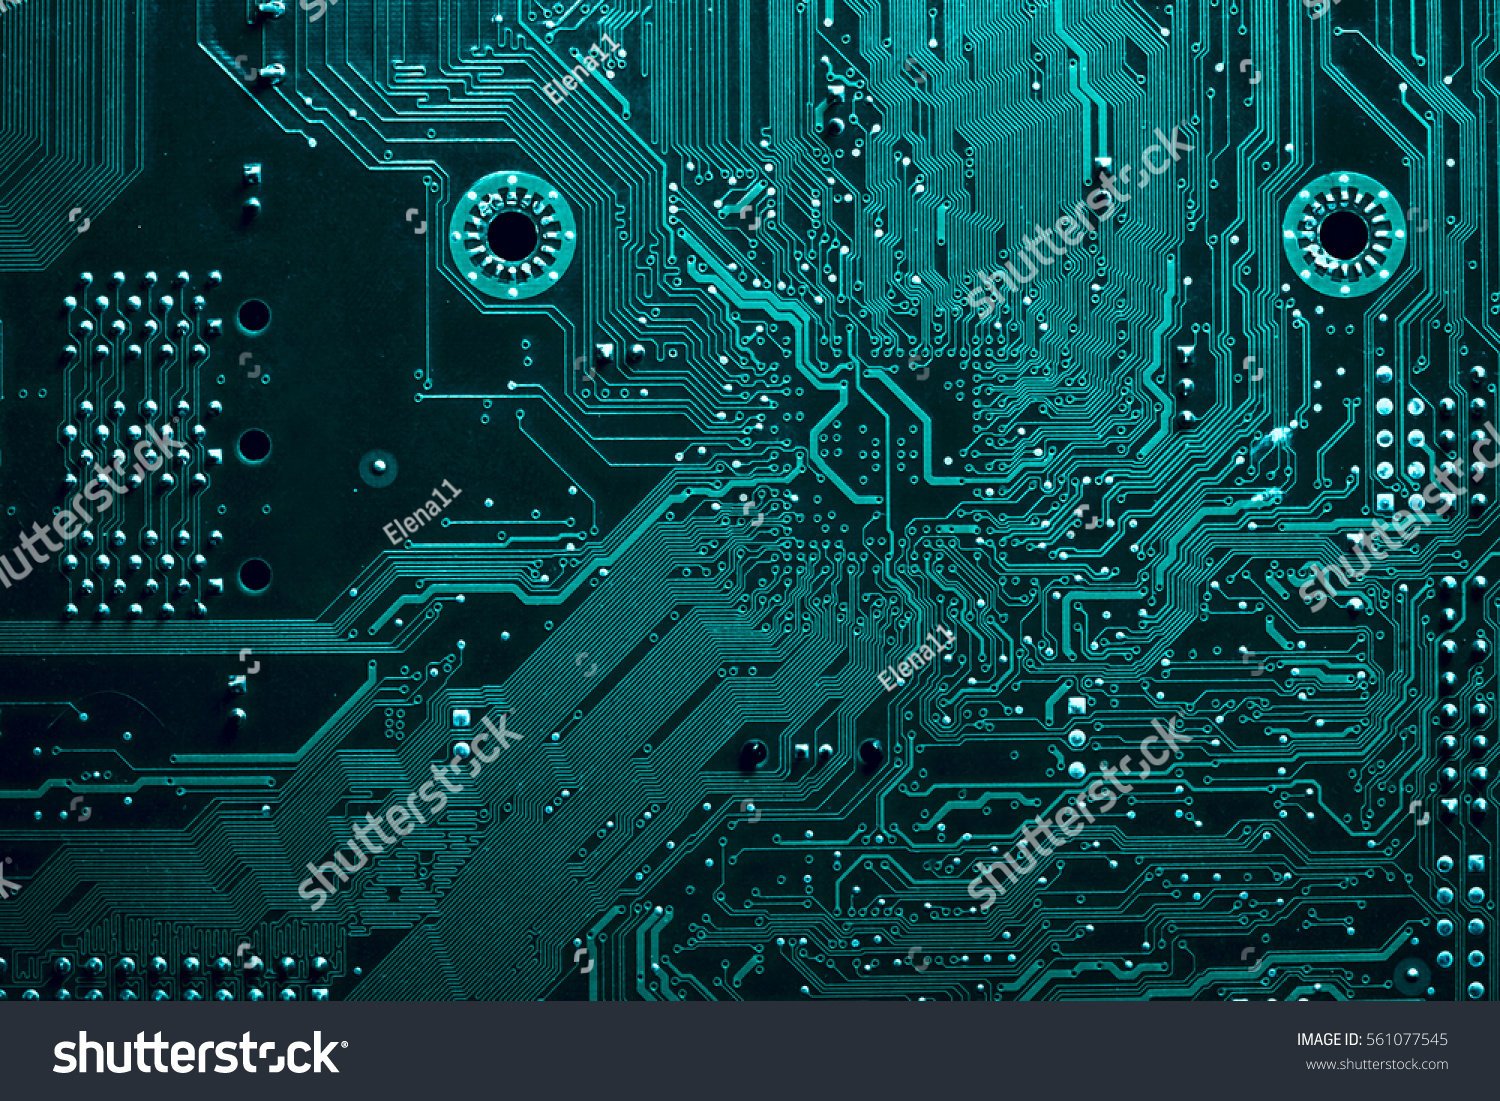 Circuit Board Electronic Computer Hardware Technology Stock Photo ...